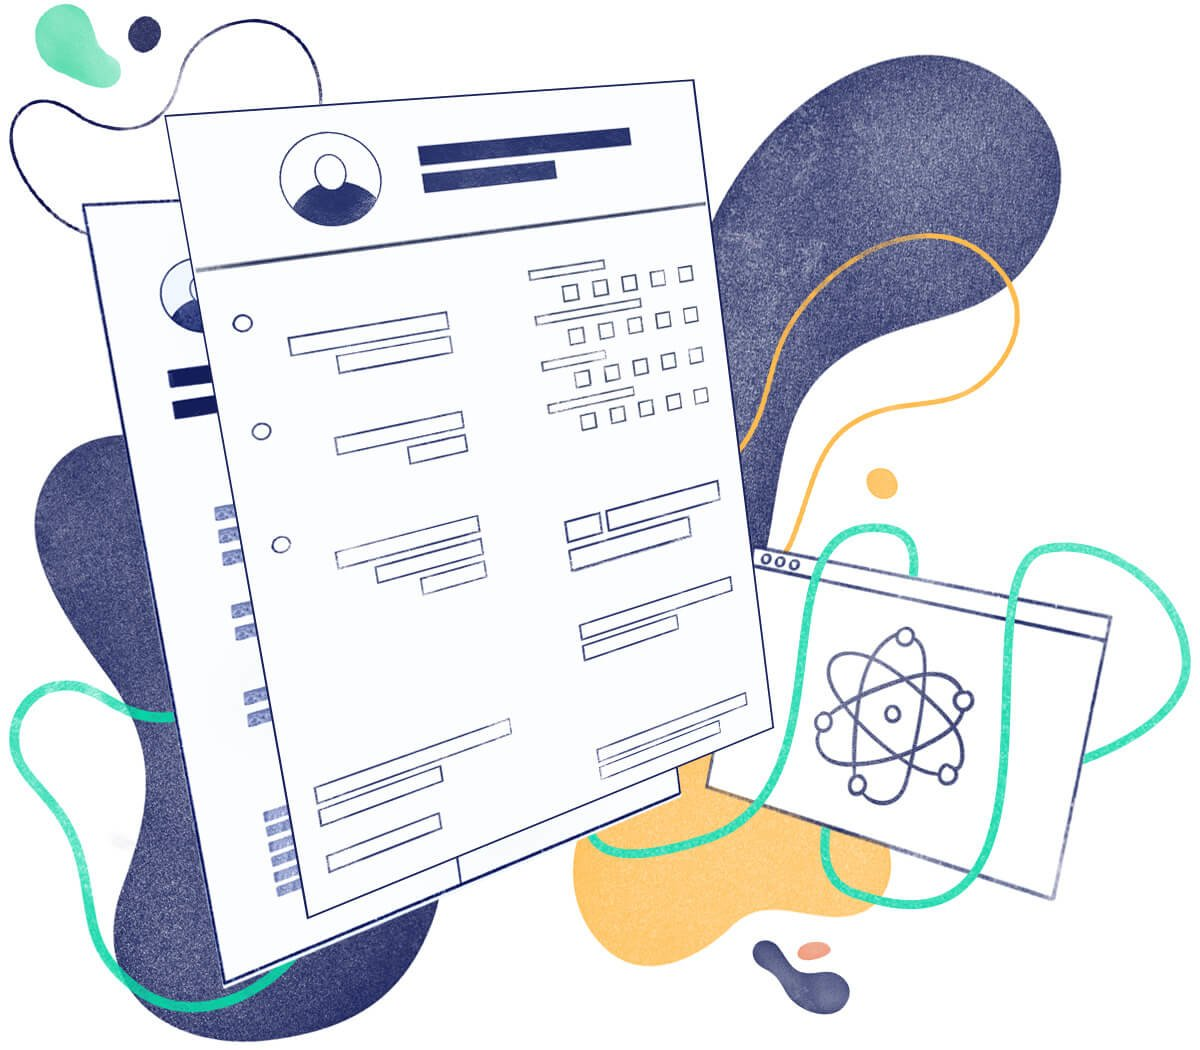 Data Scientist Resume Sample—Examples and 25+ Writing Tips